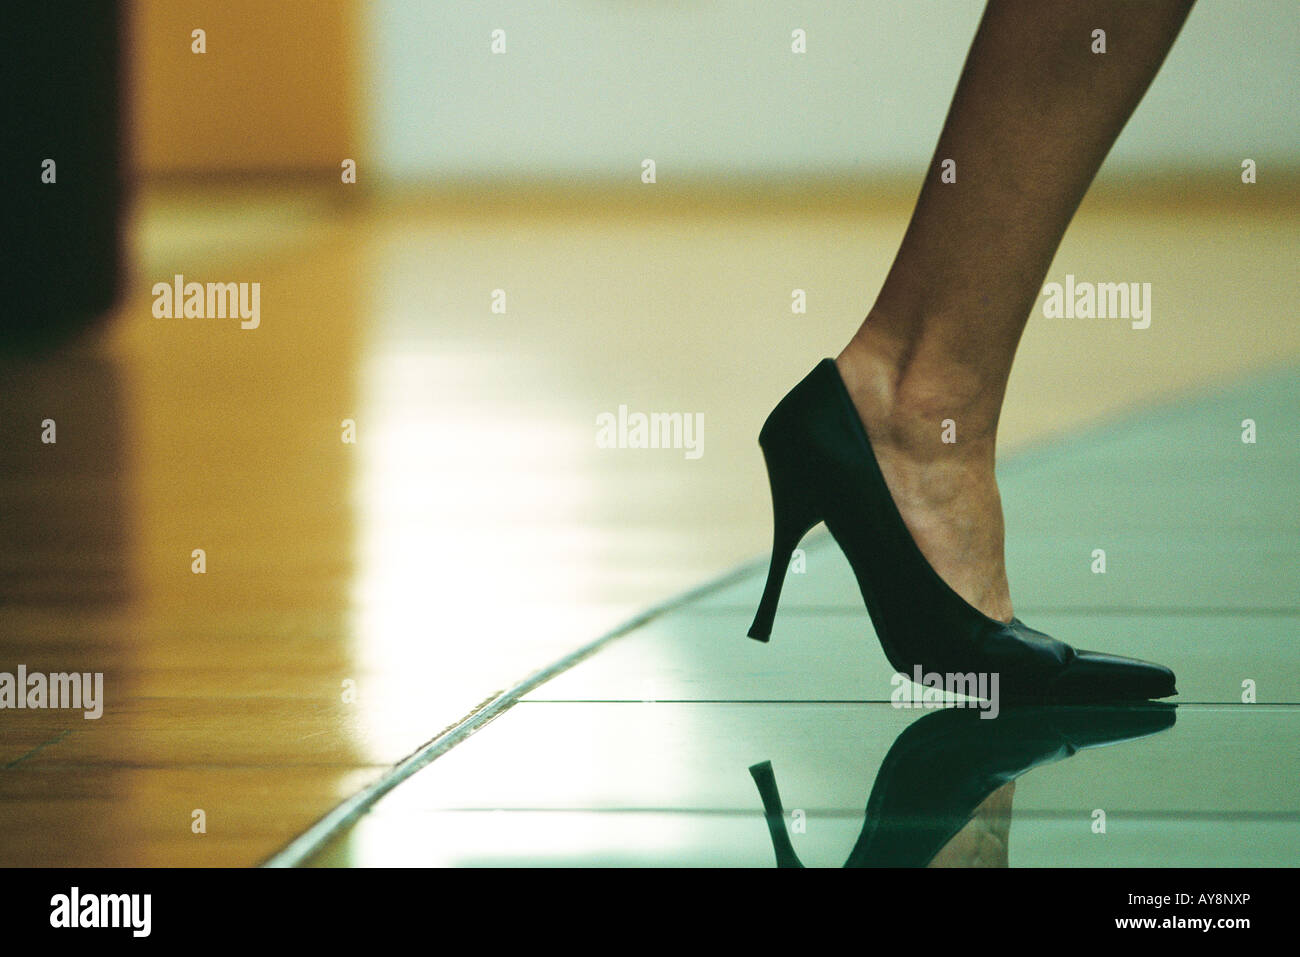 Woman walking in high heels, cropped view of foot - Stock Image